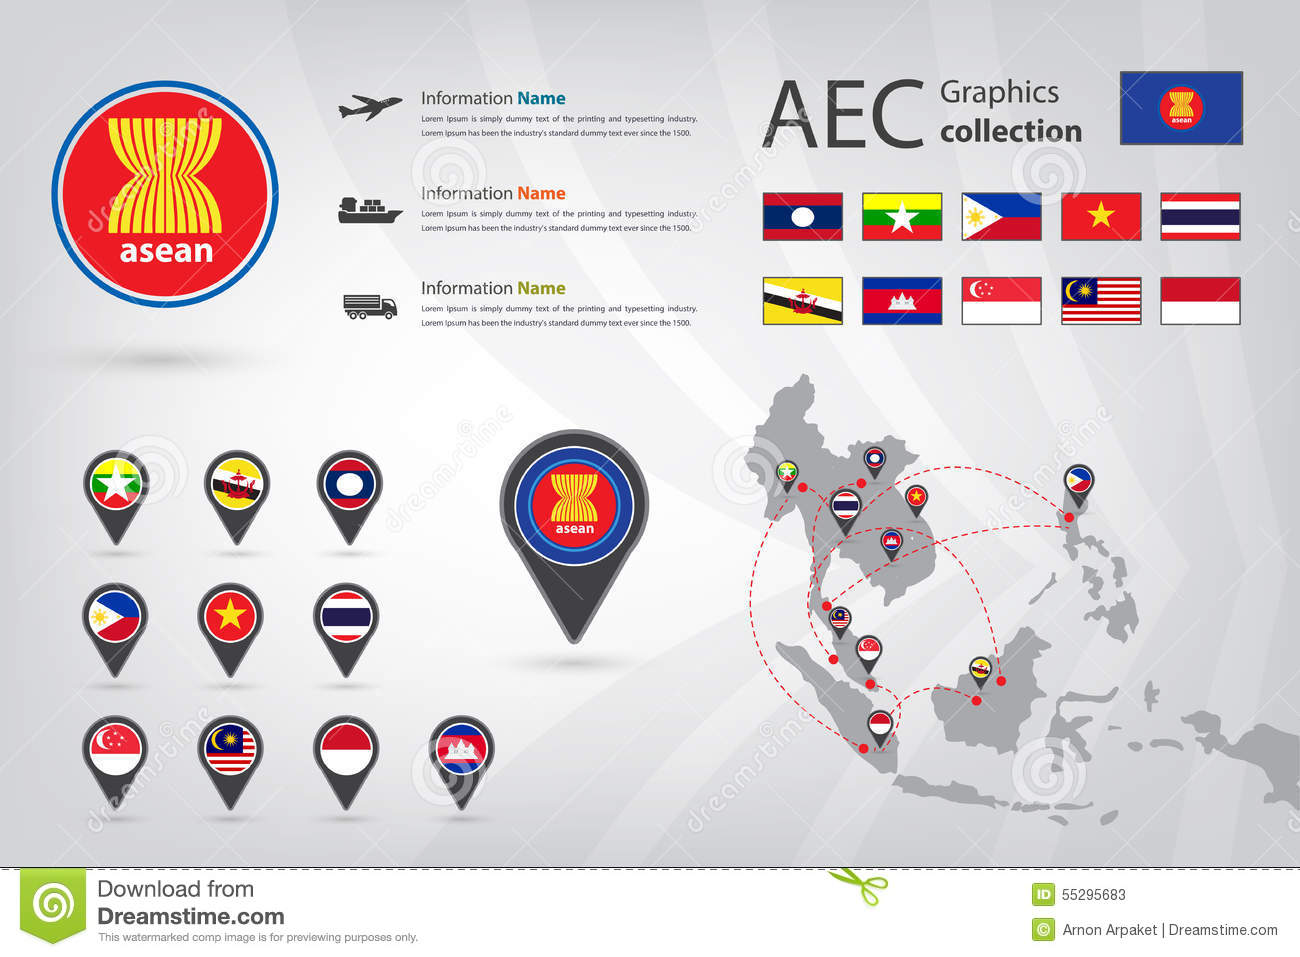 AEC Graphic collection stock image. Image of eps10 ...